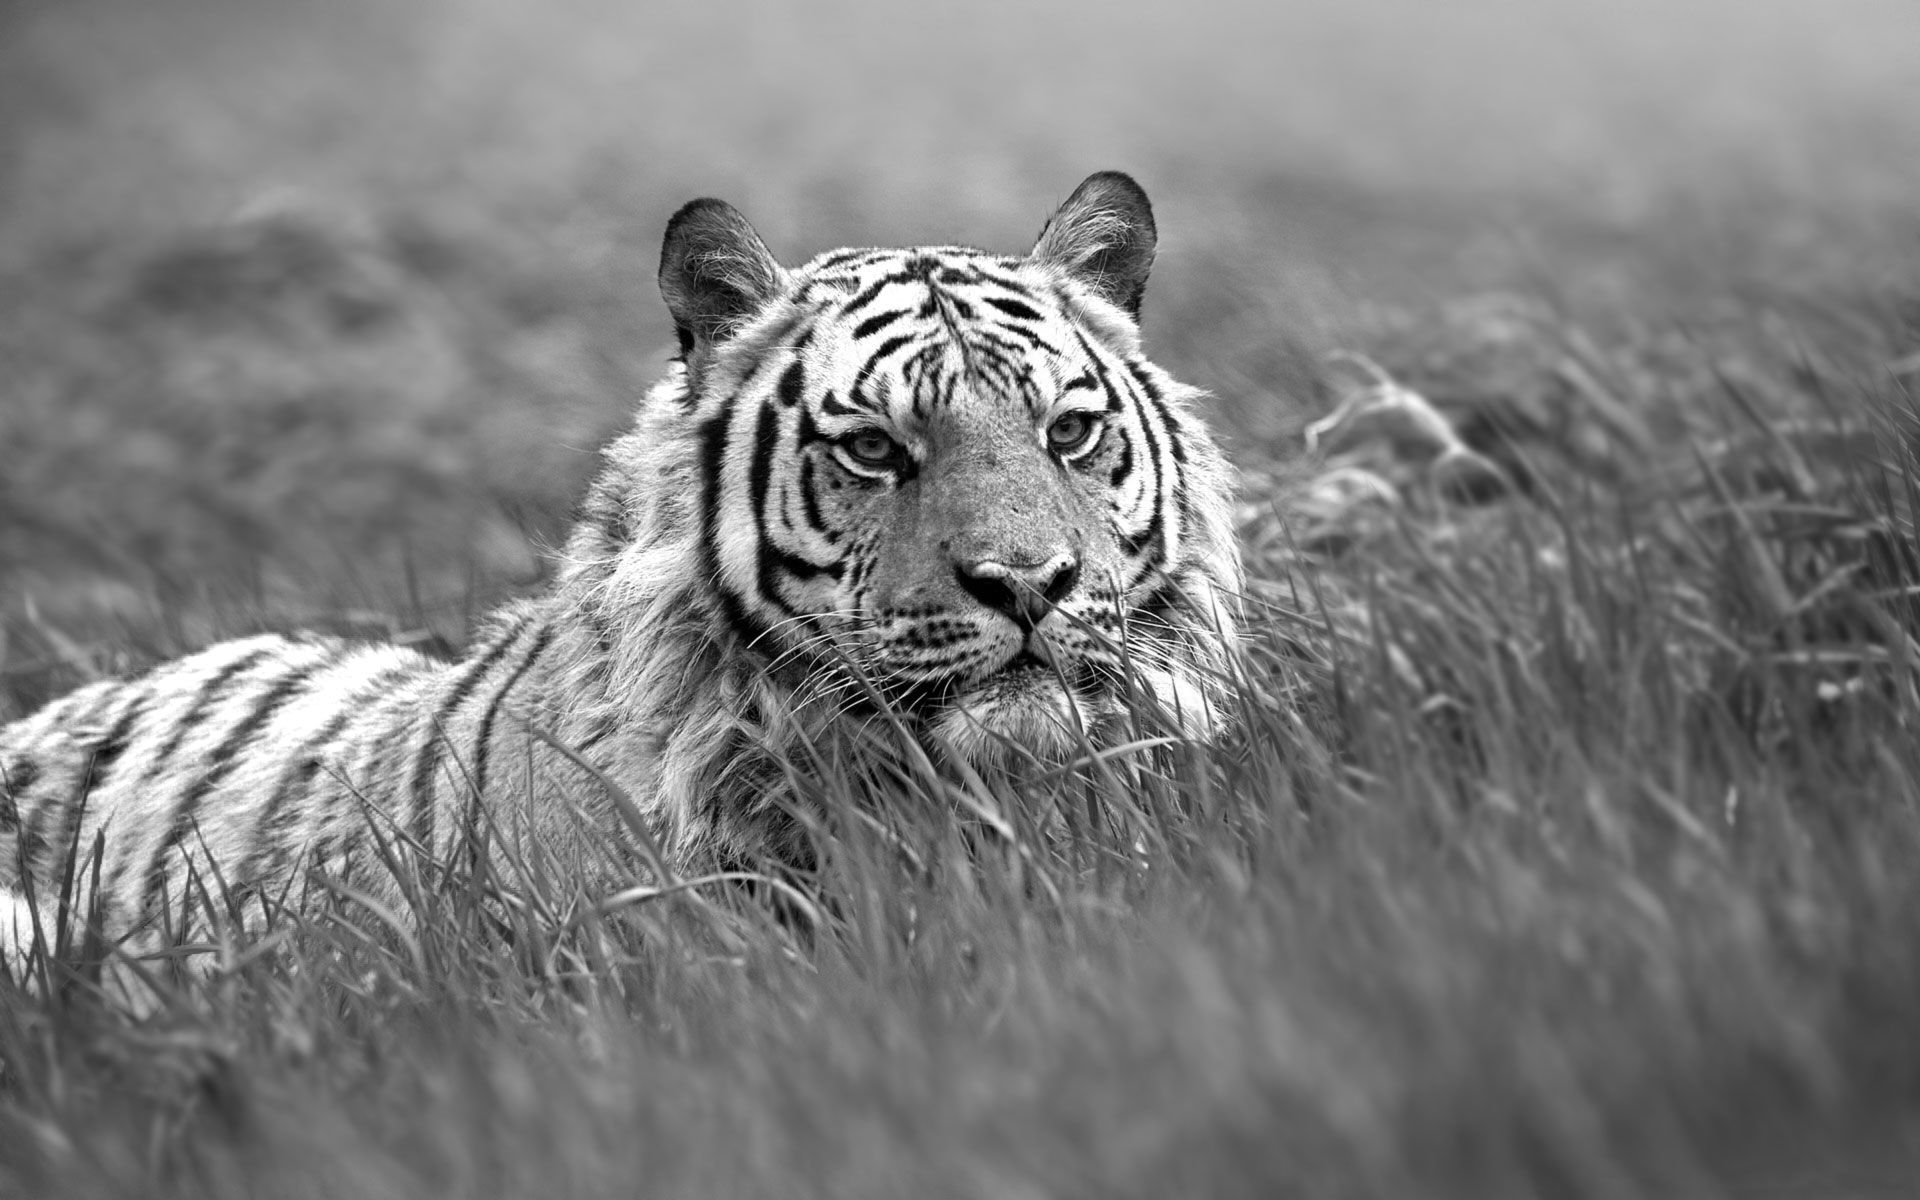 white tiger images - Google Search | LIONS & TIGERS | Pinterest ...